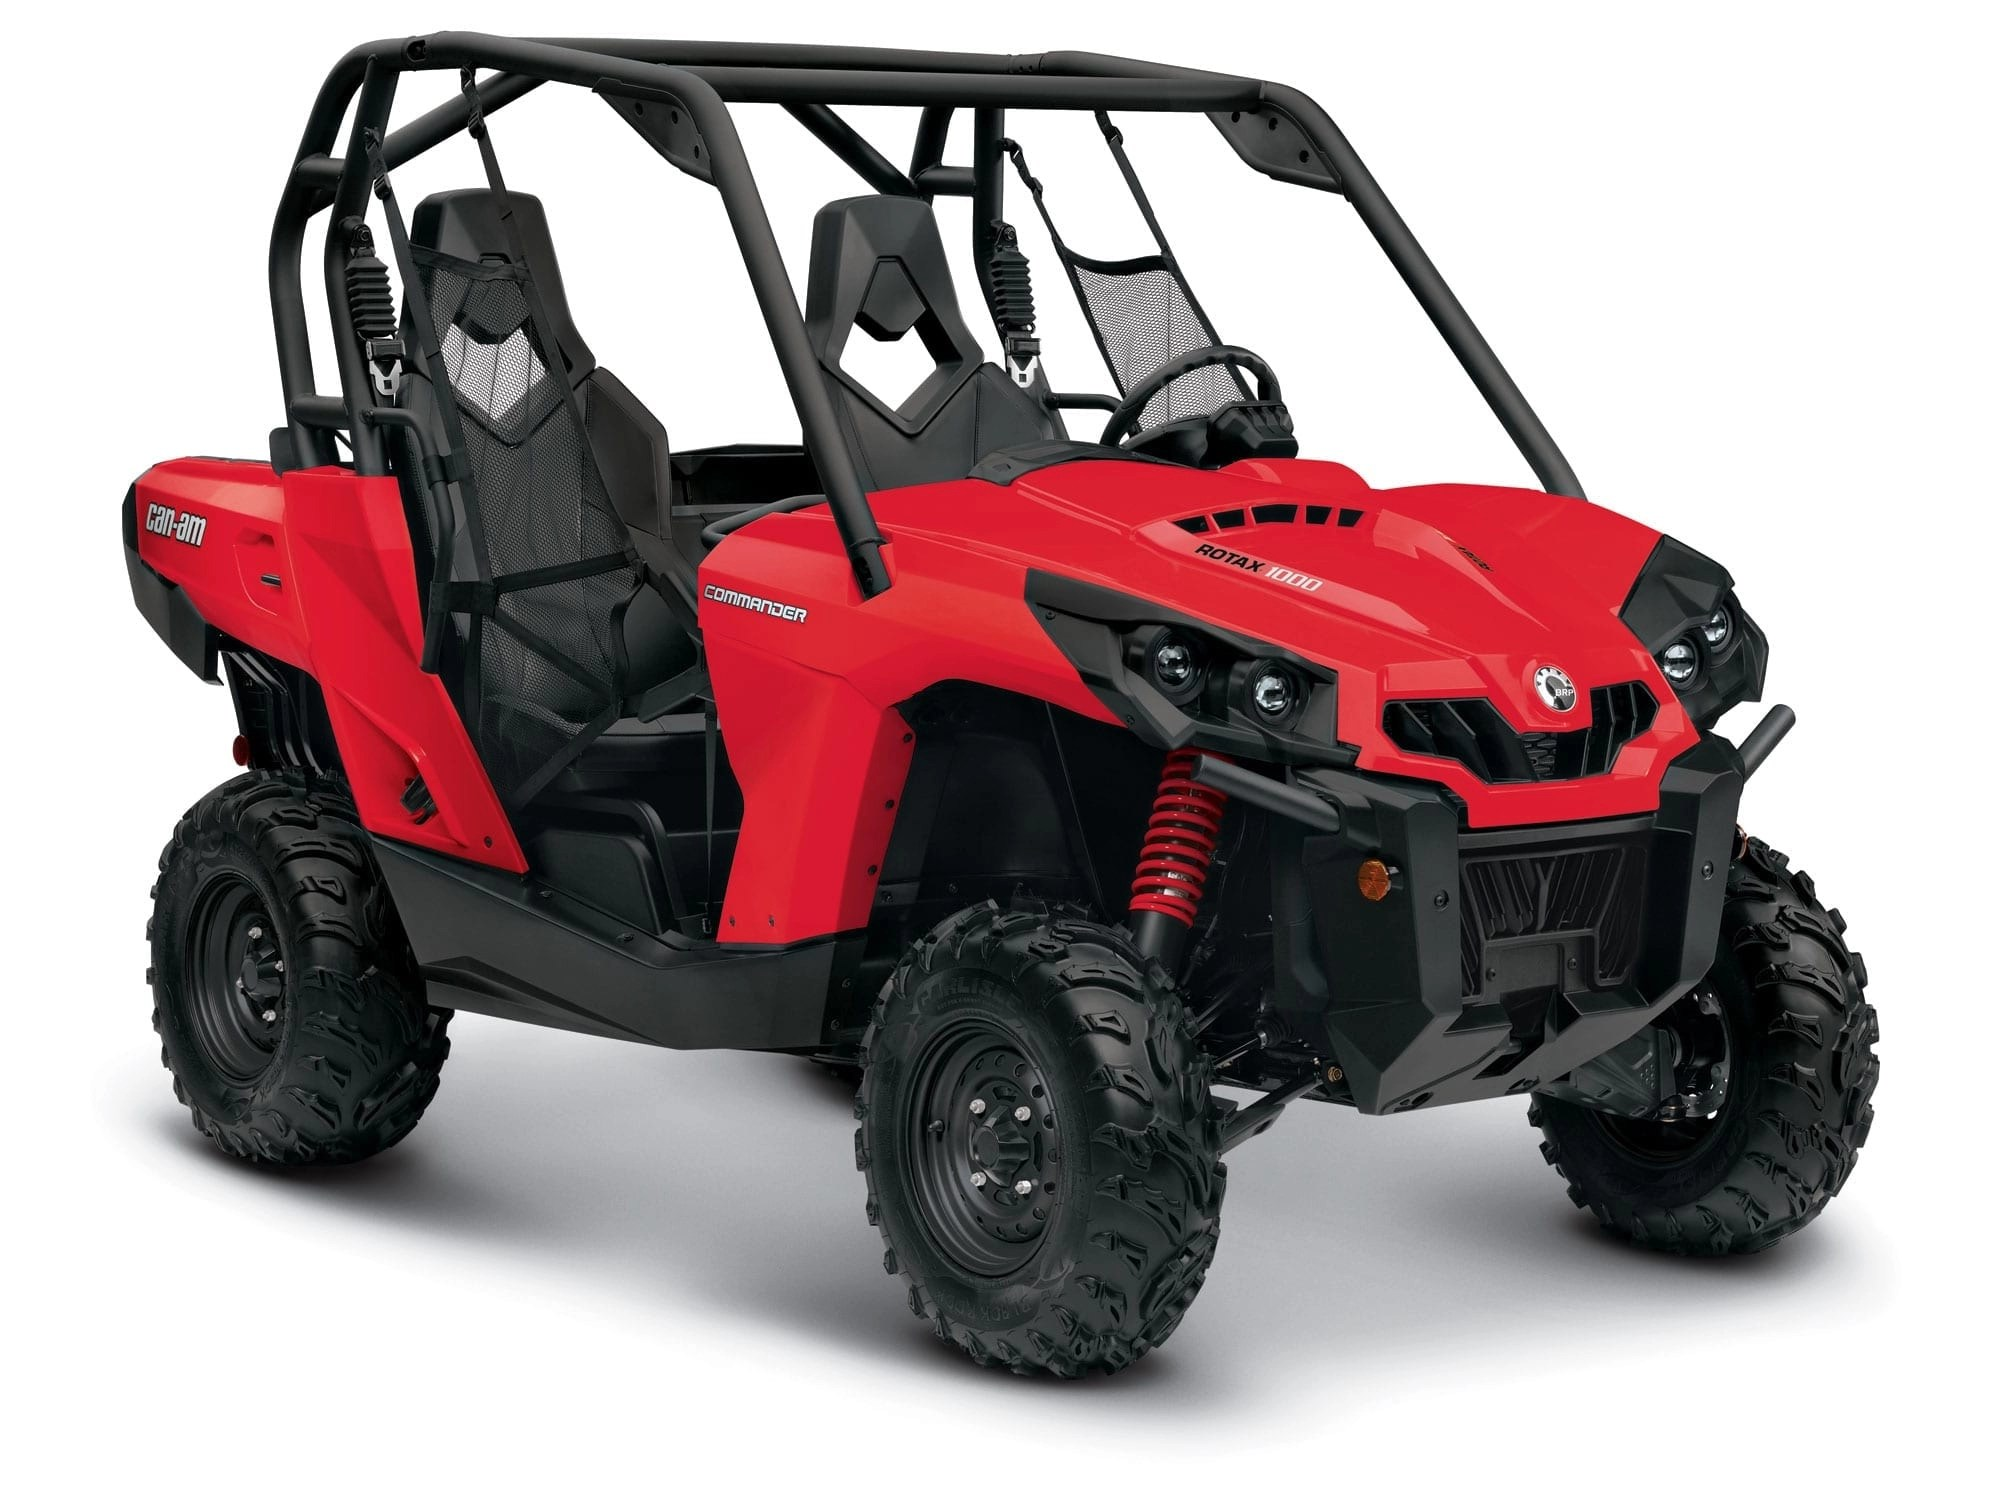 hight resolution of can am commander 1000 wiring diagram wiring diagram blog can am commander 1000 11 13